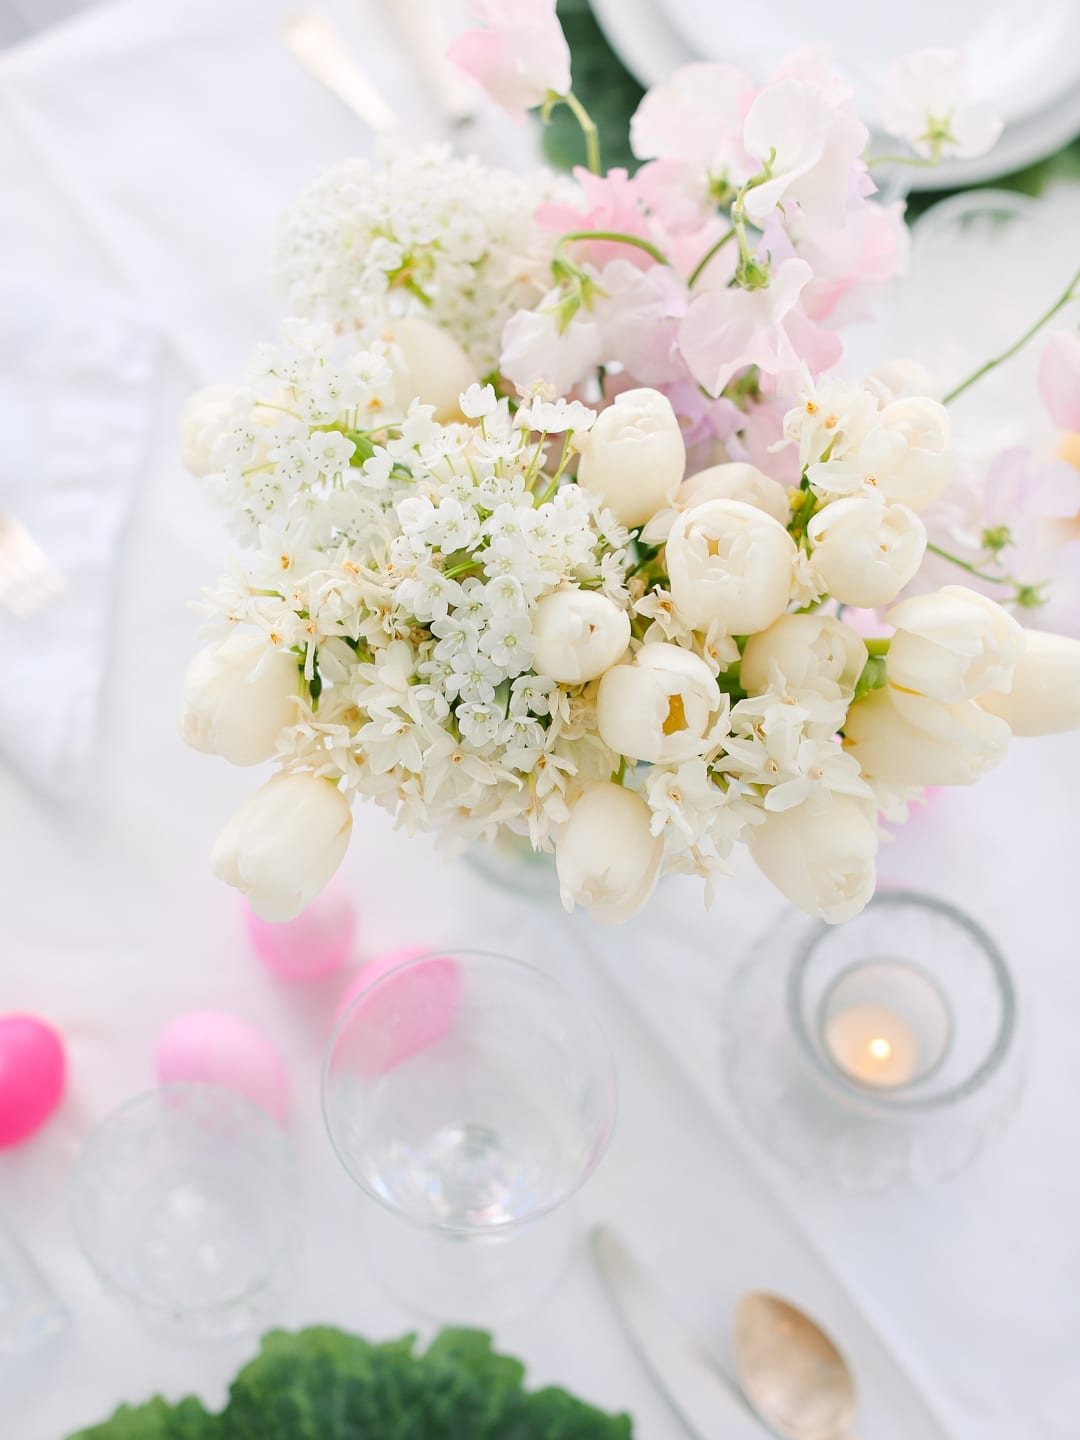 white easter flowers on table